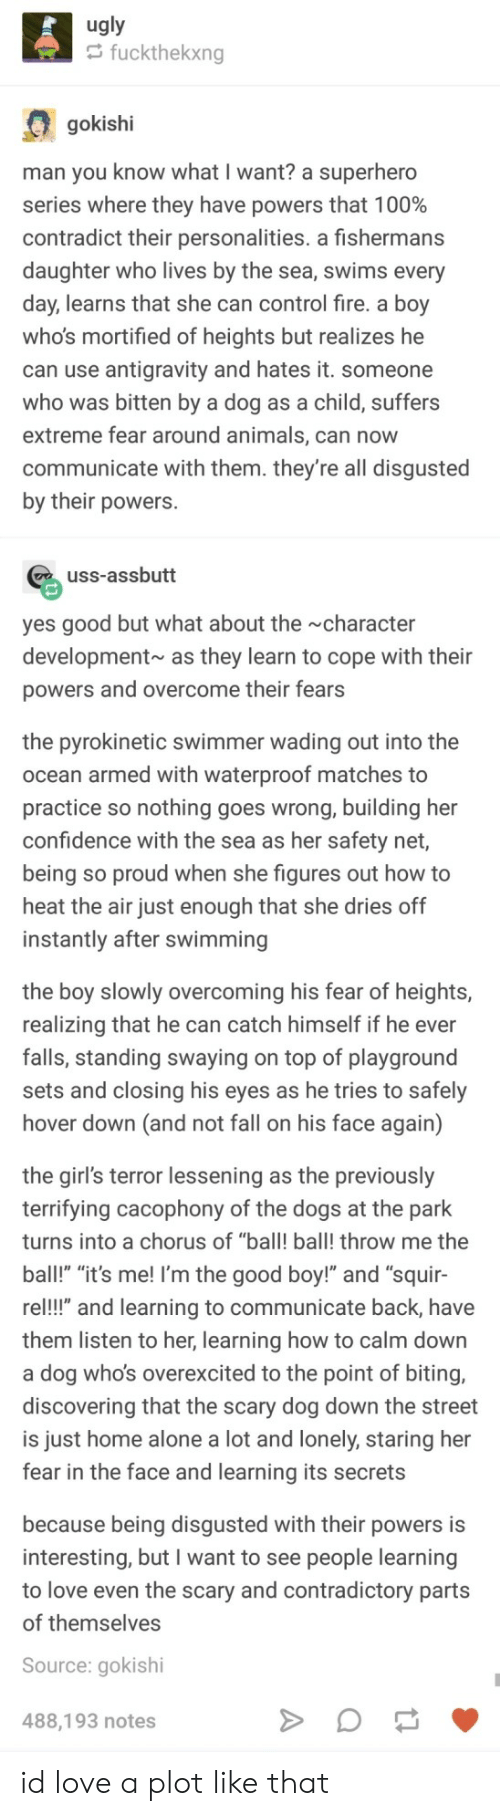 """swimmer: ugly  fuckthekxng  gokishi  man you know what I want? a superhero  series where they have powers that 1 00%  contradict their personalities. a fishermans  daughter who lives by the sea, swims every  day, learns that she can control fire. a boy  who's mortified of heights but realizes he  can use antigravity and hates it. someone  who was bitten by a dog as a child, suffers  extreme fear around animals, can now  communicate with them. they're all disgusted  by their powers.  uss-assbutt  yes good but what about the character  development as they learn to cope with their  powers and overcome their fears  the pyrokinetic swimmer wading out into the  ocean armed with waterproof matches to  practice so nothing goes wrong, building her  confidence with the sea as her safety net,  being so proud when she figures out how to  heat the air just enough that she dries off  instantly after swimming  the boy slowly overcoming his fear of heights,  realizing that he can catch himself if he ever  falls, standing swaying on top of playground  sets and closing his eyes as he tries to safely  hover down (and not fall on his face again)  the girl's terror lessening as the previously  terrifying cacophony of the dogs at the park  turns into a chorus of """"ball! ball! throw me the  ball!"""" """"it's me! I'm the good boy!"""" and """"squir-  re!!"""" and learning to communicate back, have  them listen to her, learning how to calm down  a dog who's overexcited to the point of biting,  discovering that the scary dog down the street  is just home alone a lot and lonely, staring her  fear in the face and learning its secrets  because being disgusted with their powers is  interesting, but I want to see people learning  to love even the scary and contradictory parts  of themselves  Source: gokishi  488,193 notes id love a plot like that"""